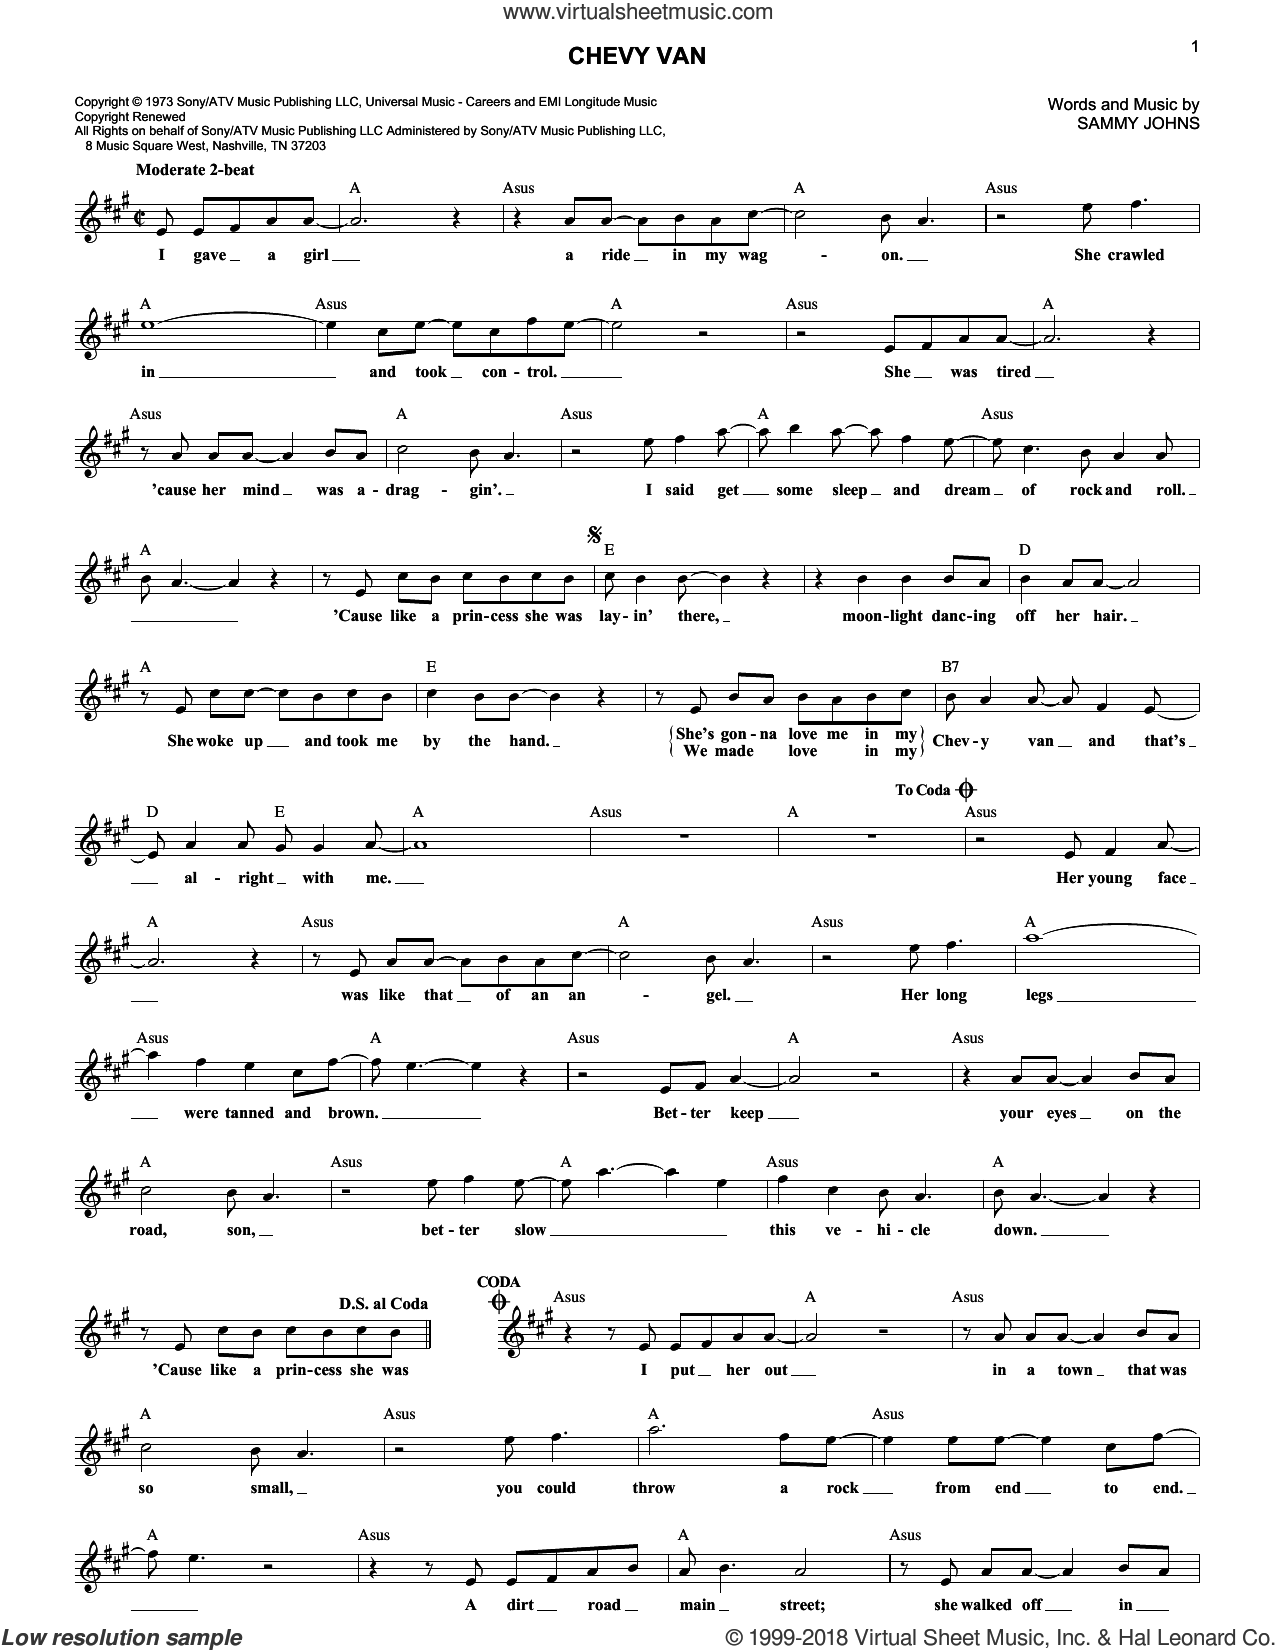 Chevy Van sheet music for voice and other instruments (fake book) by Sammy Johns, intermediate skill level